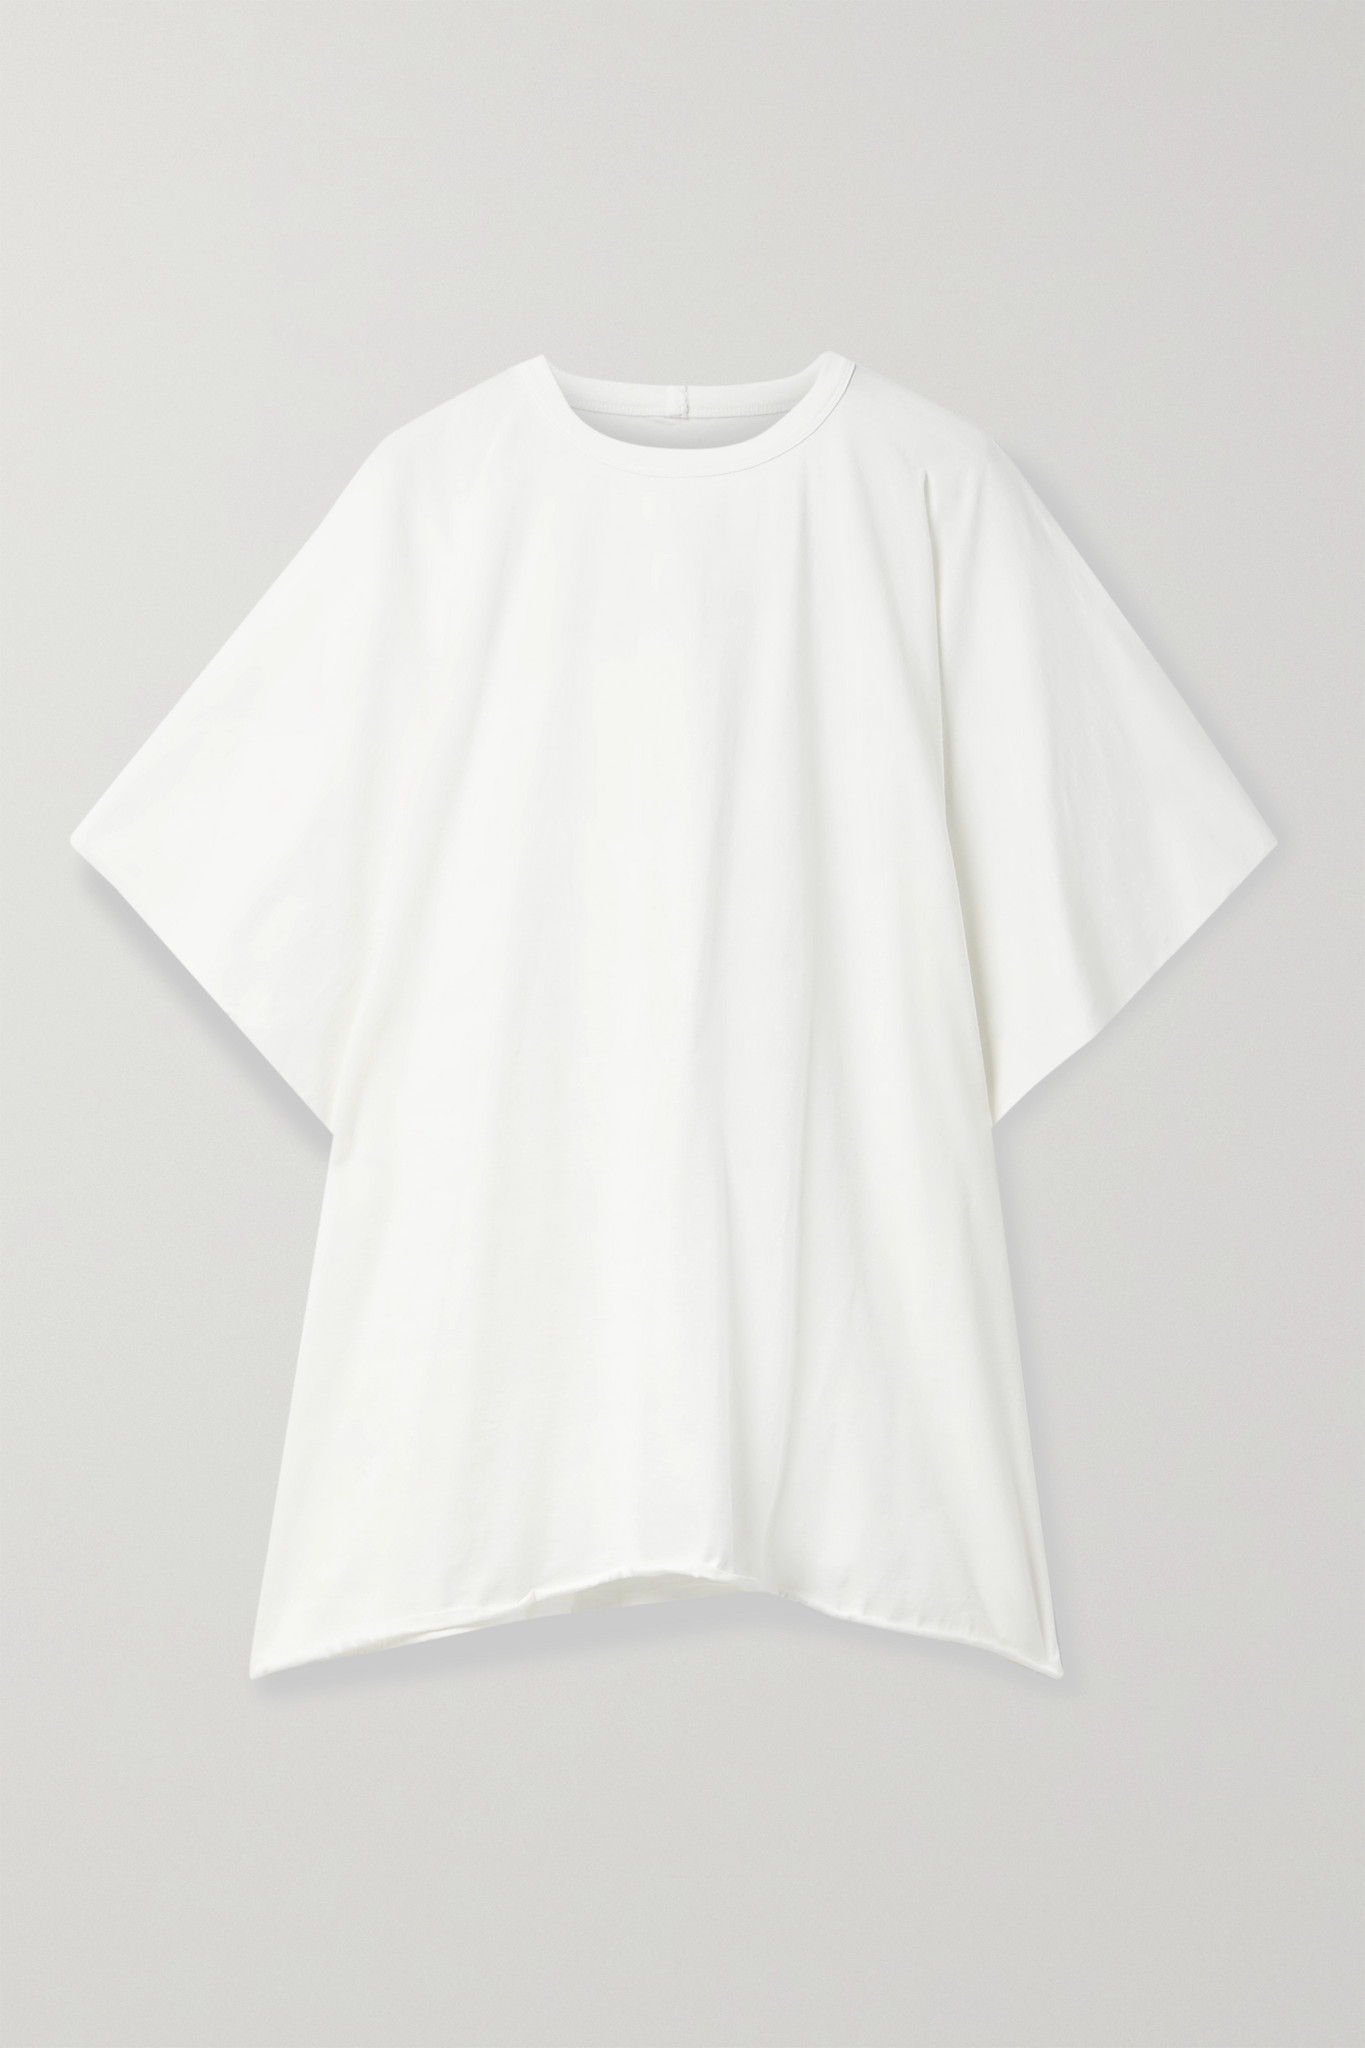 RICK OWENS - Minerva Cotton-jersey T-shirt - White - IT40